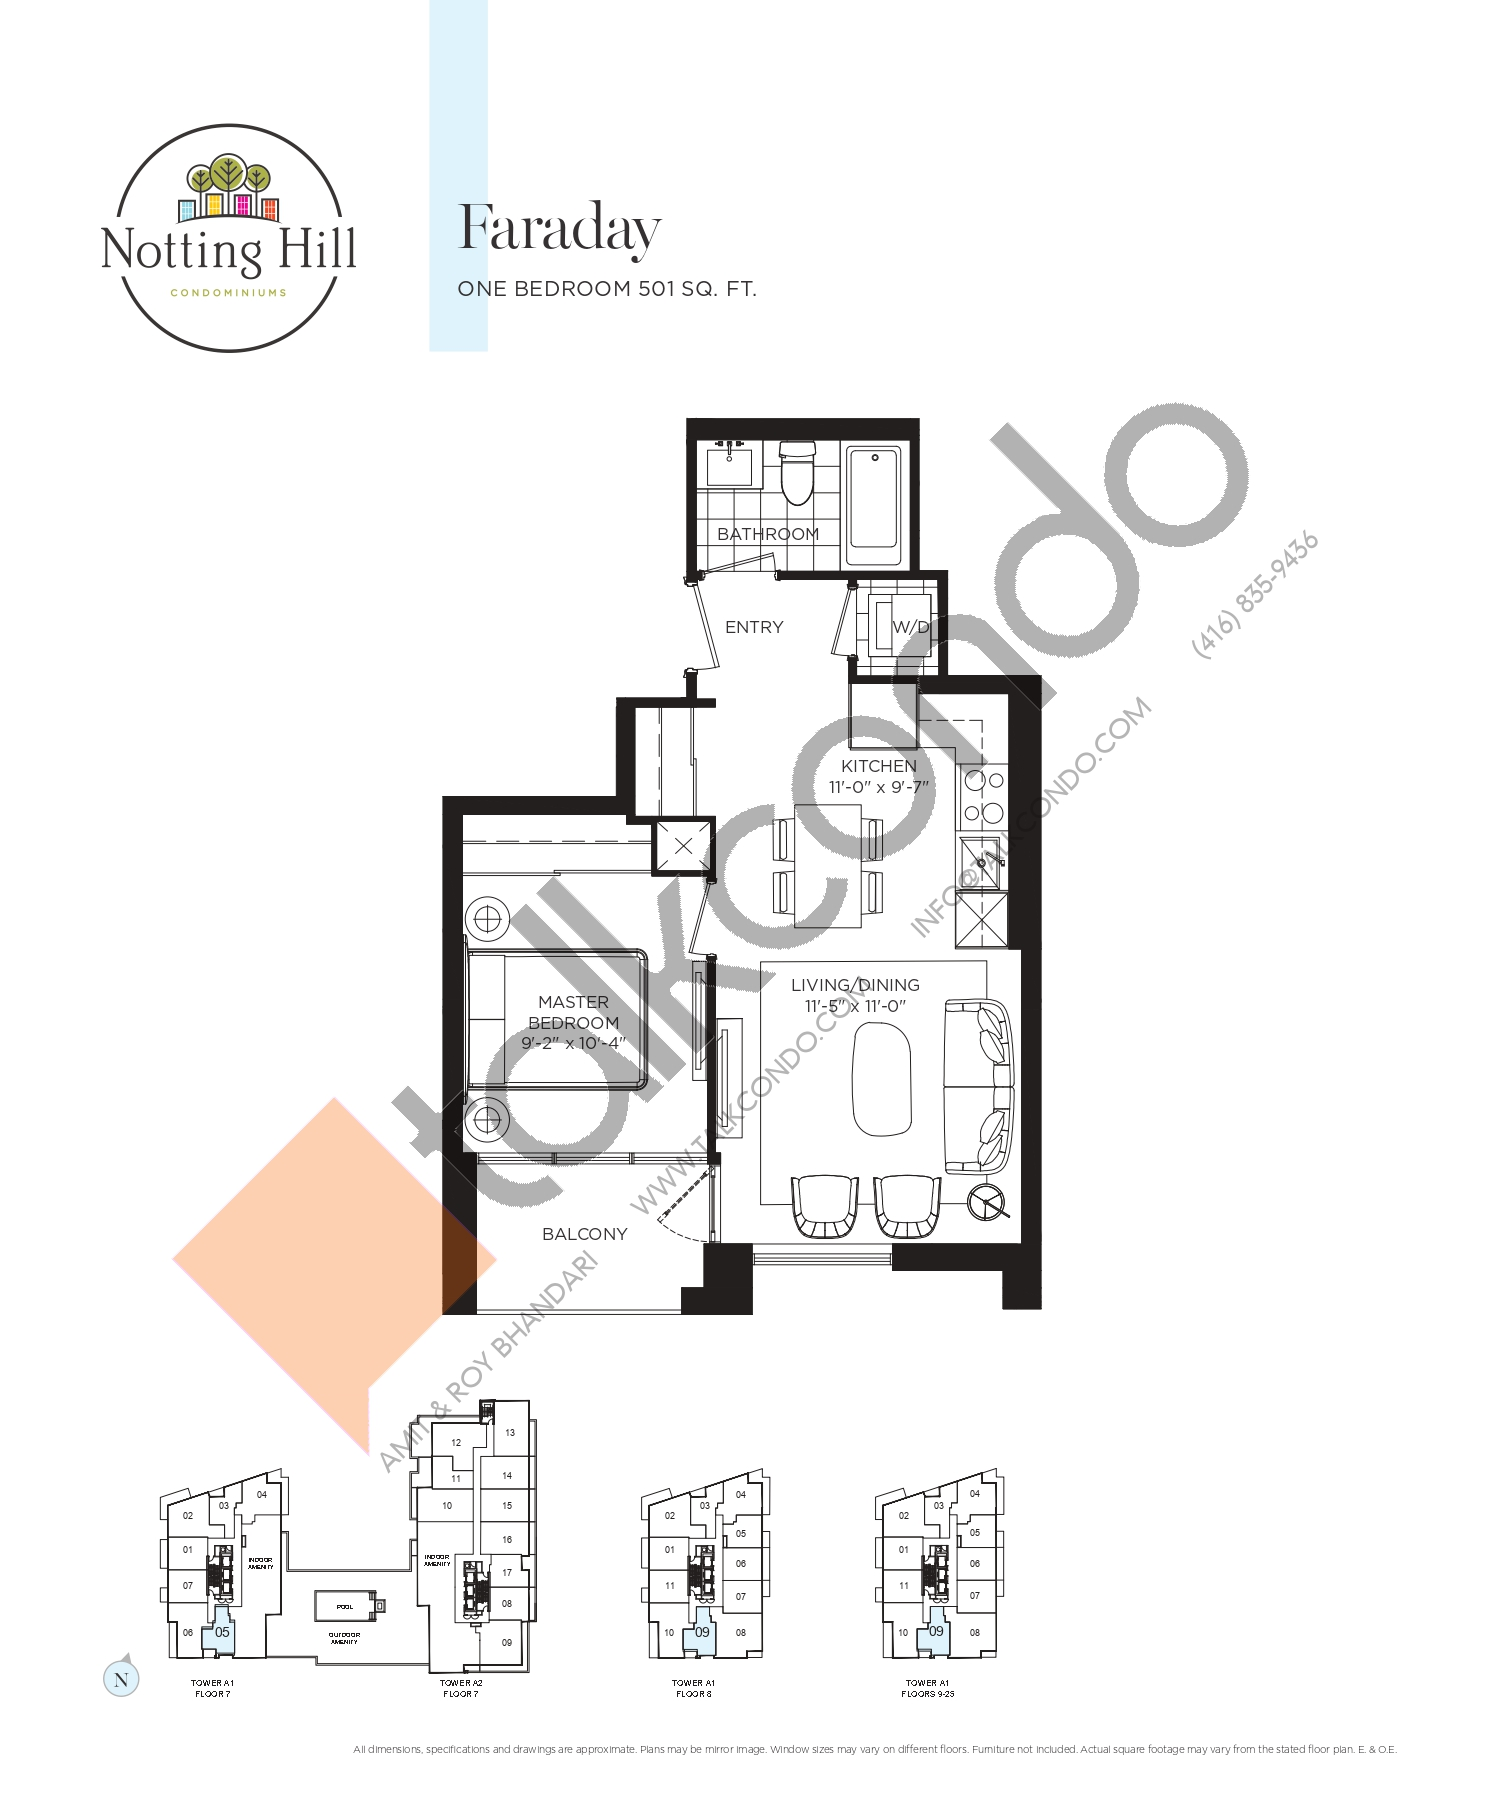 Faraday Floor Plan at Notting Hill Phase 2 Condos - 501 sq.ft